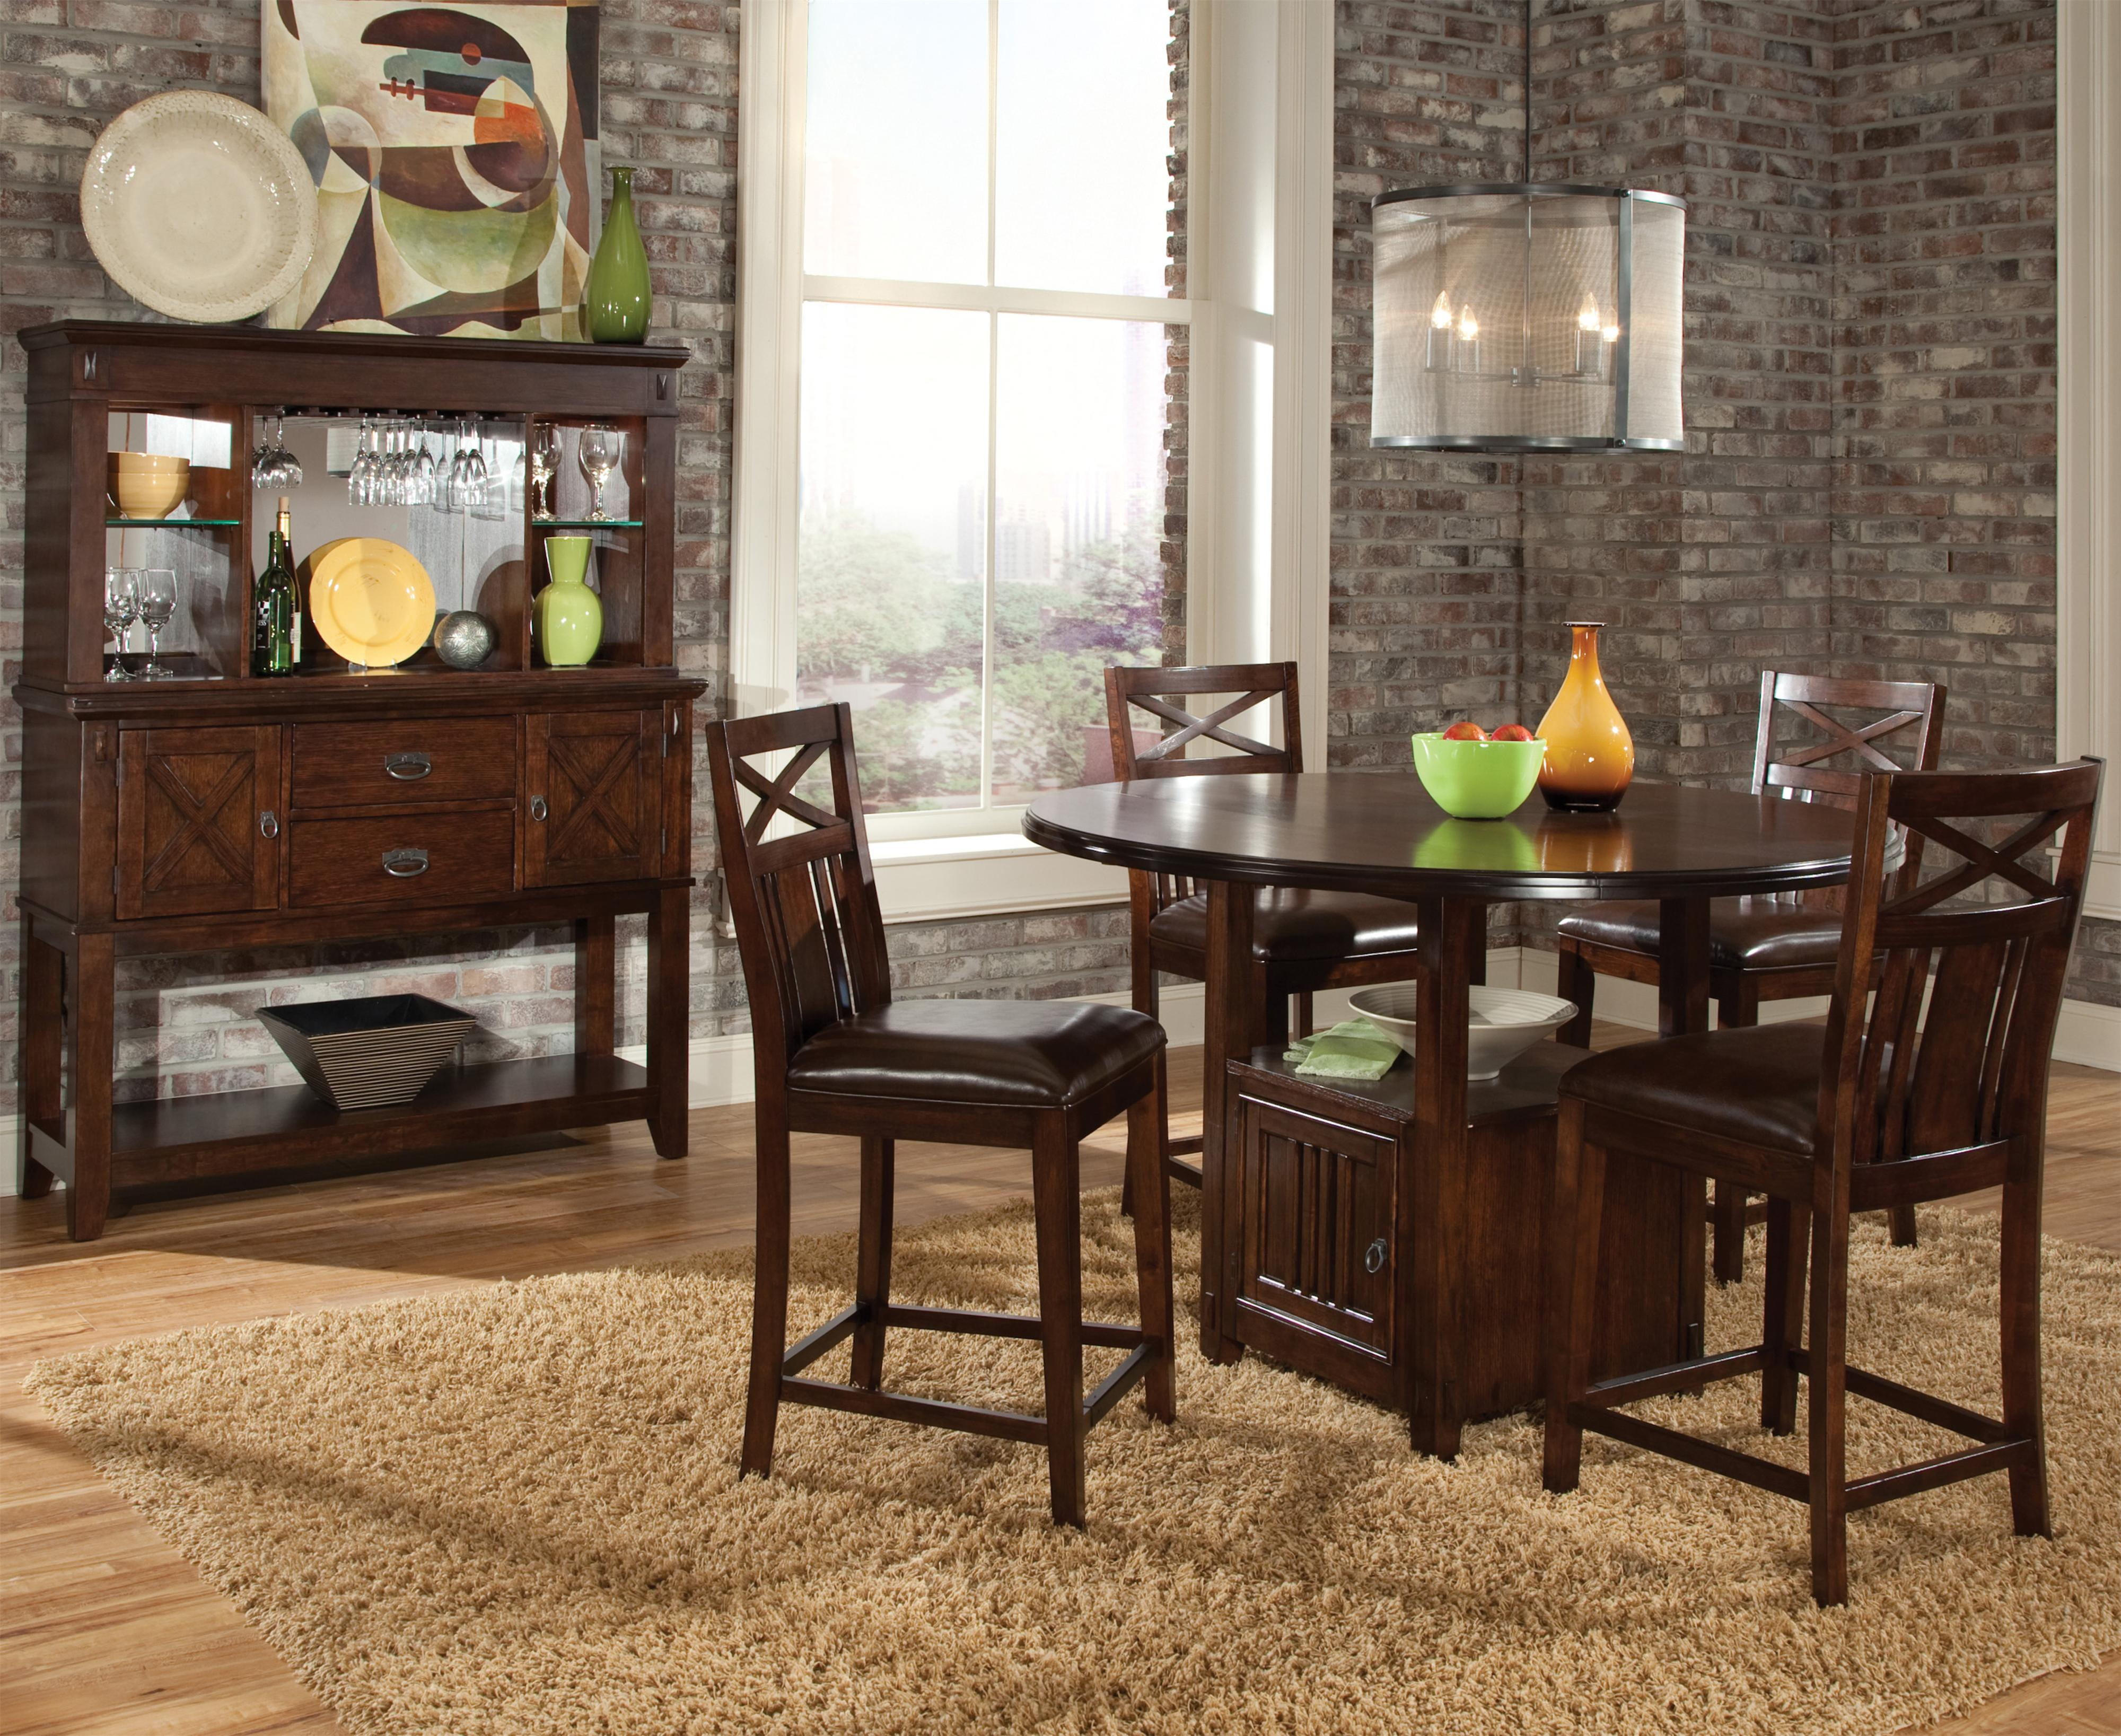 Standard Furniture Sonoma Casual Dining Room Group - Item Number: 86600 Dining Room Group 1